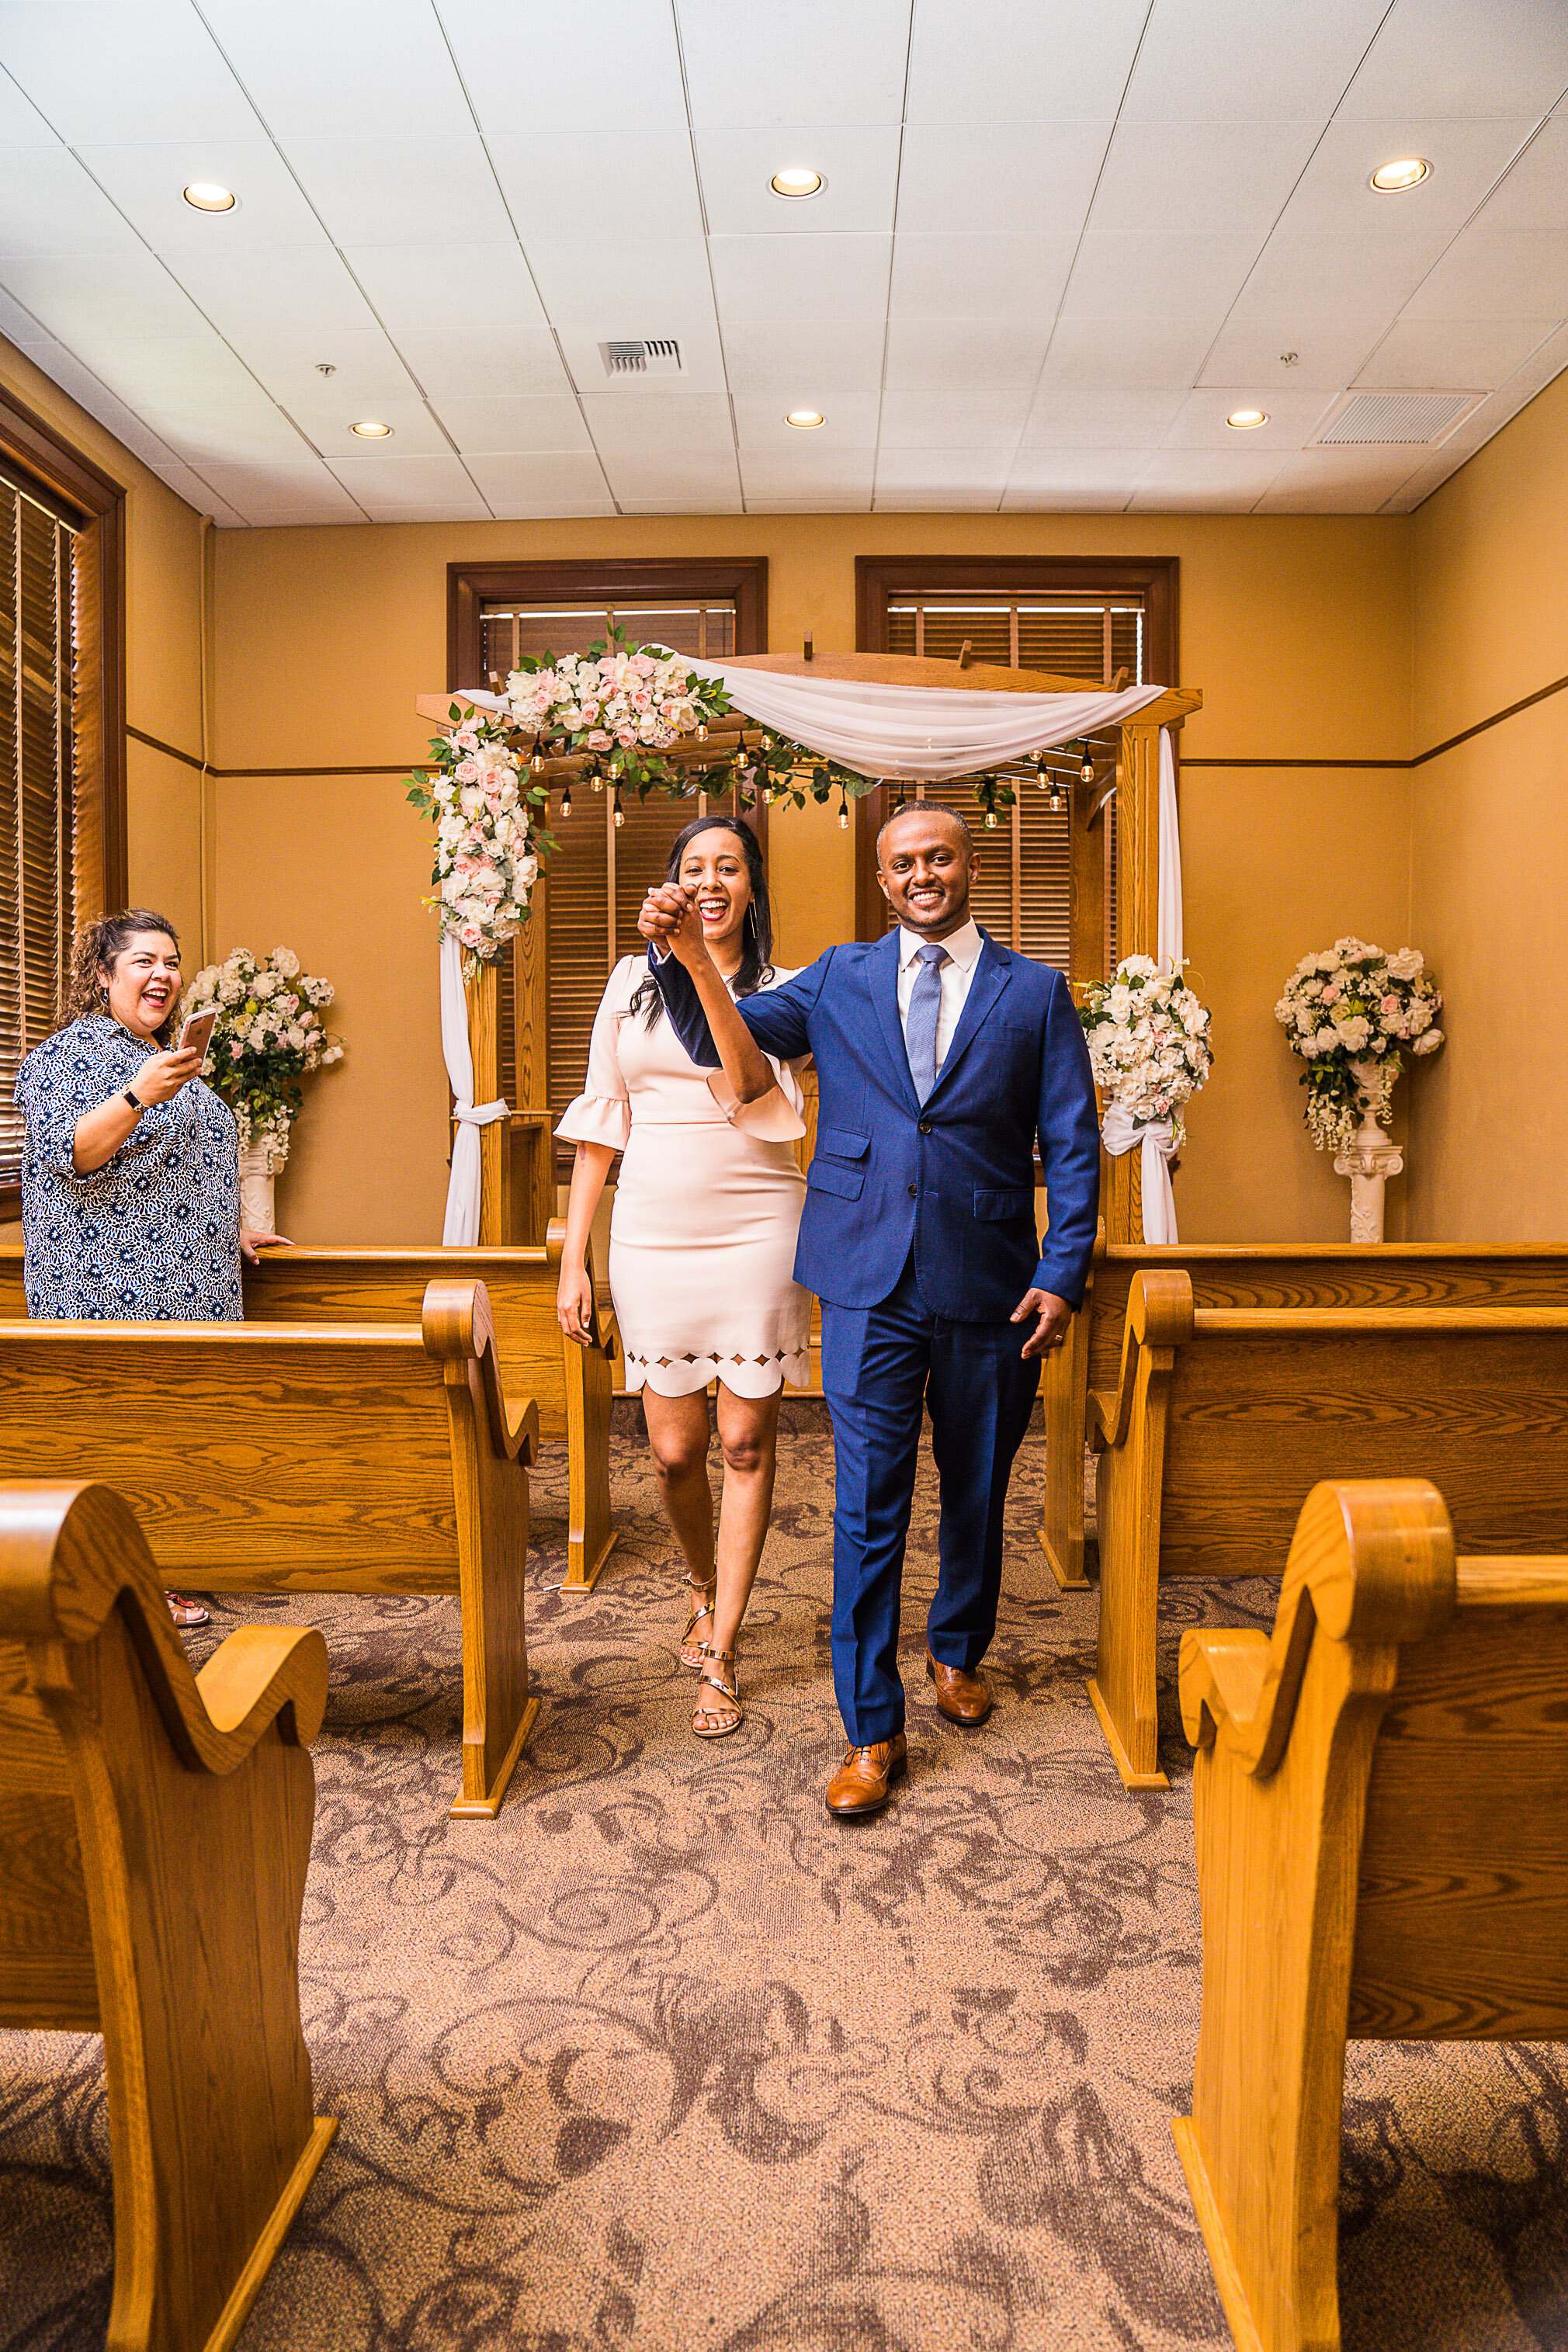 sewit-elopement-orange-county-santa-ana-courthouse-17.jpg